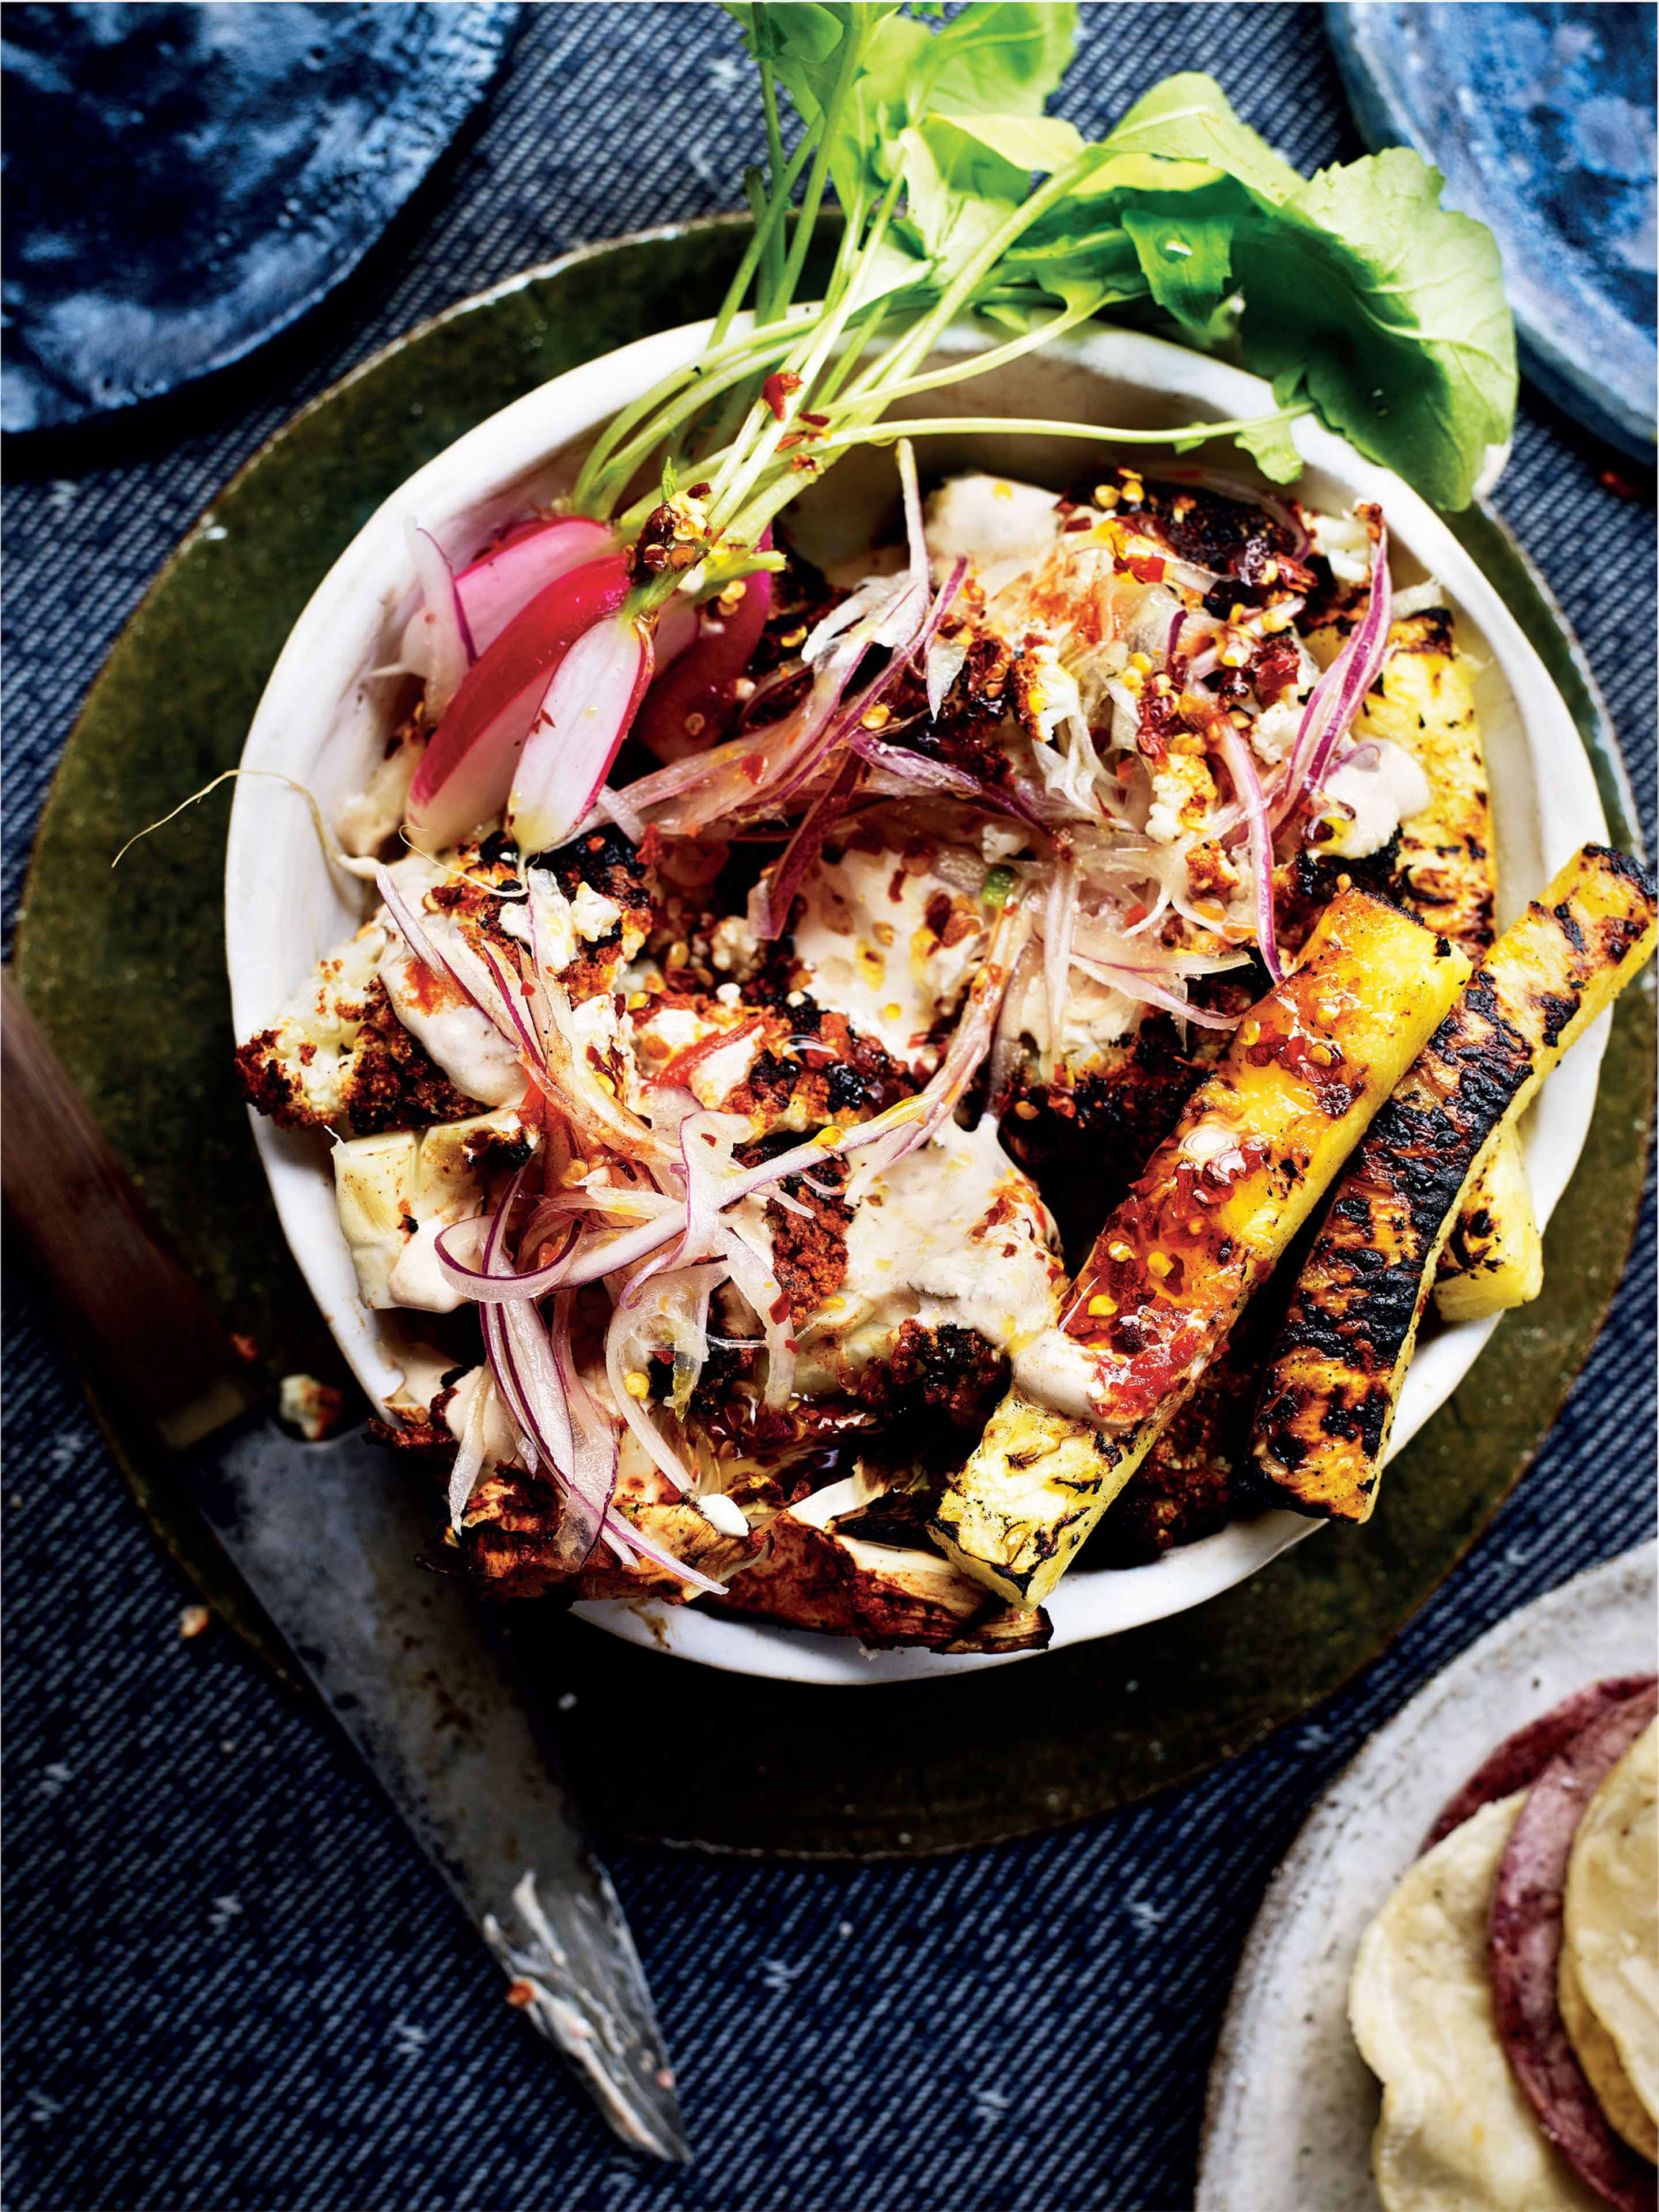 Cauliflower 'al pastor', pineapple & pickled onions